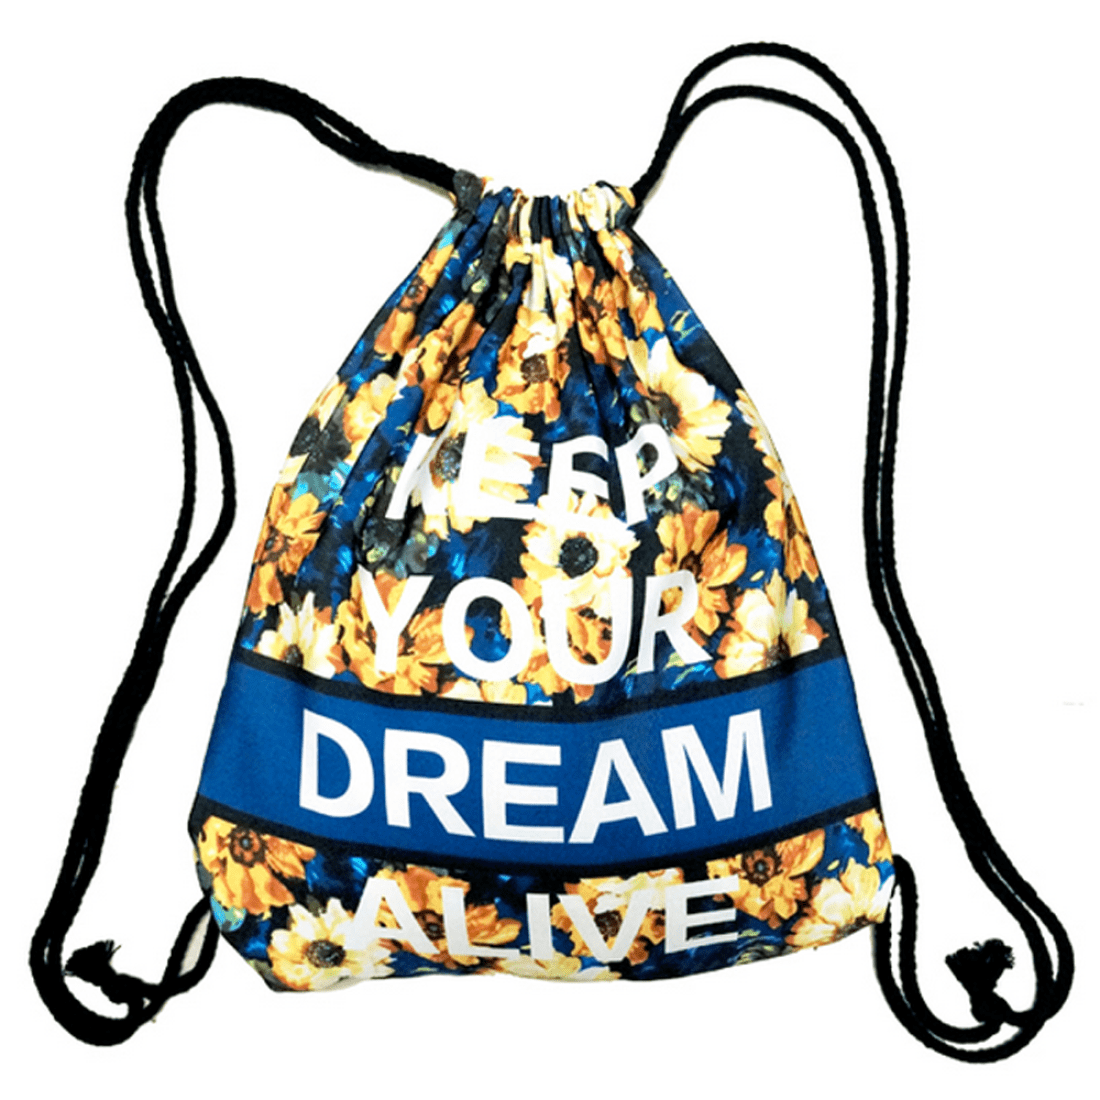 Keep Your Dream Alive Quote Floral Print Drawstring Cinch Backpack Bag